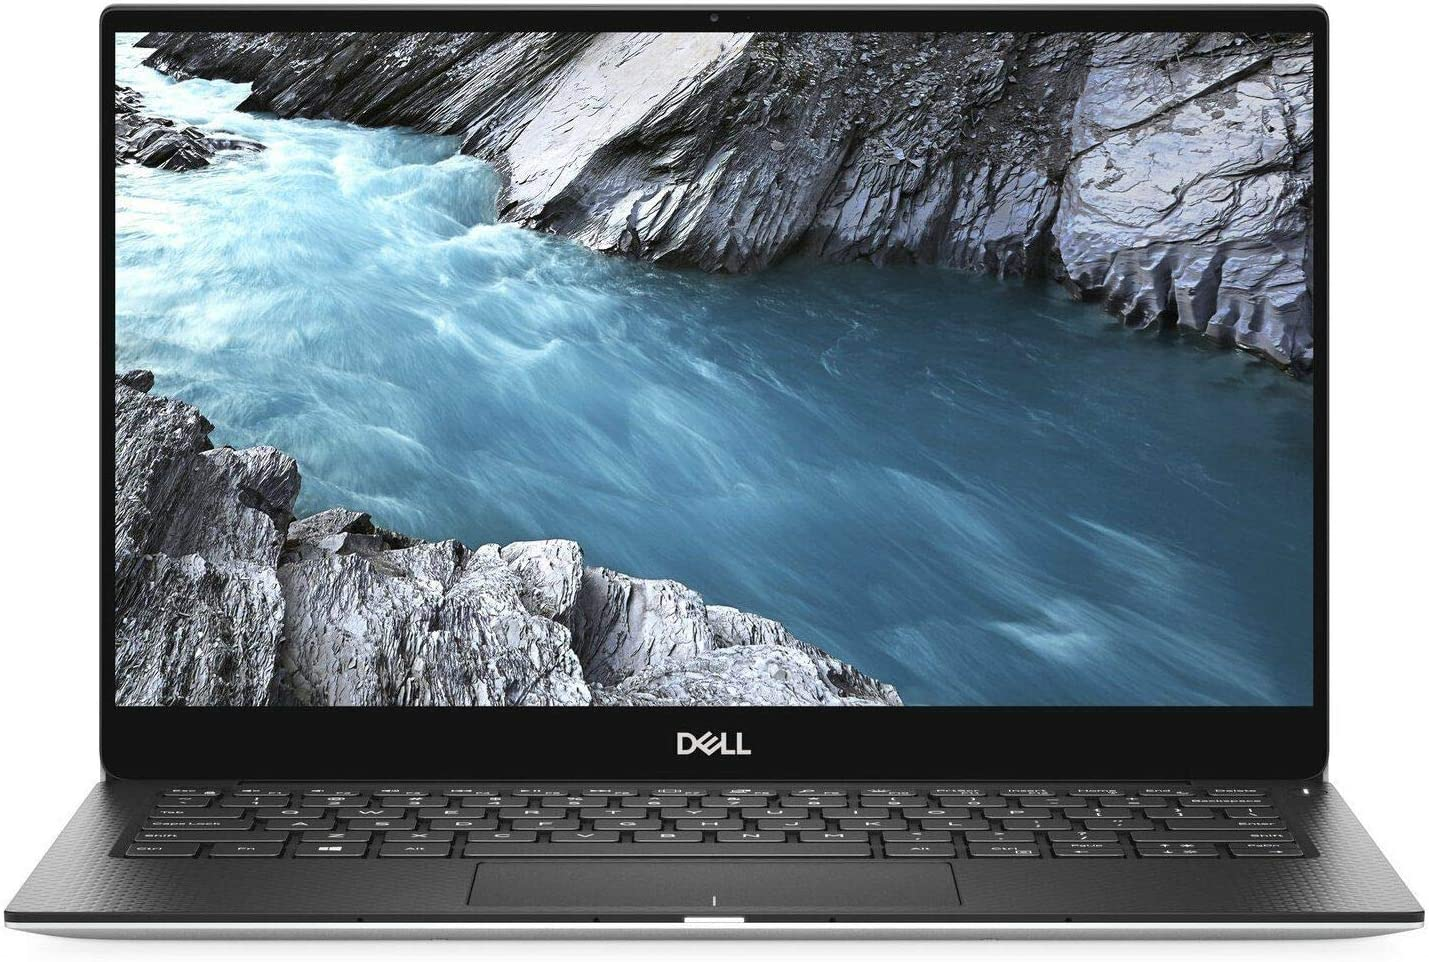 "Dell XPS 13 9380 13.3"" Touchscreen Notebook - 3840 X 2160 - Core I5-8265U - 8GB RAM - 256GB SSD - Platinum Silver, Carbon Black"